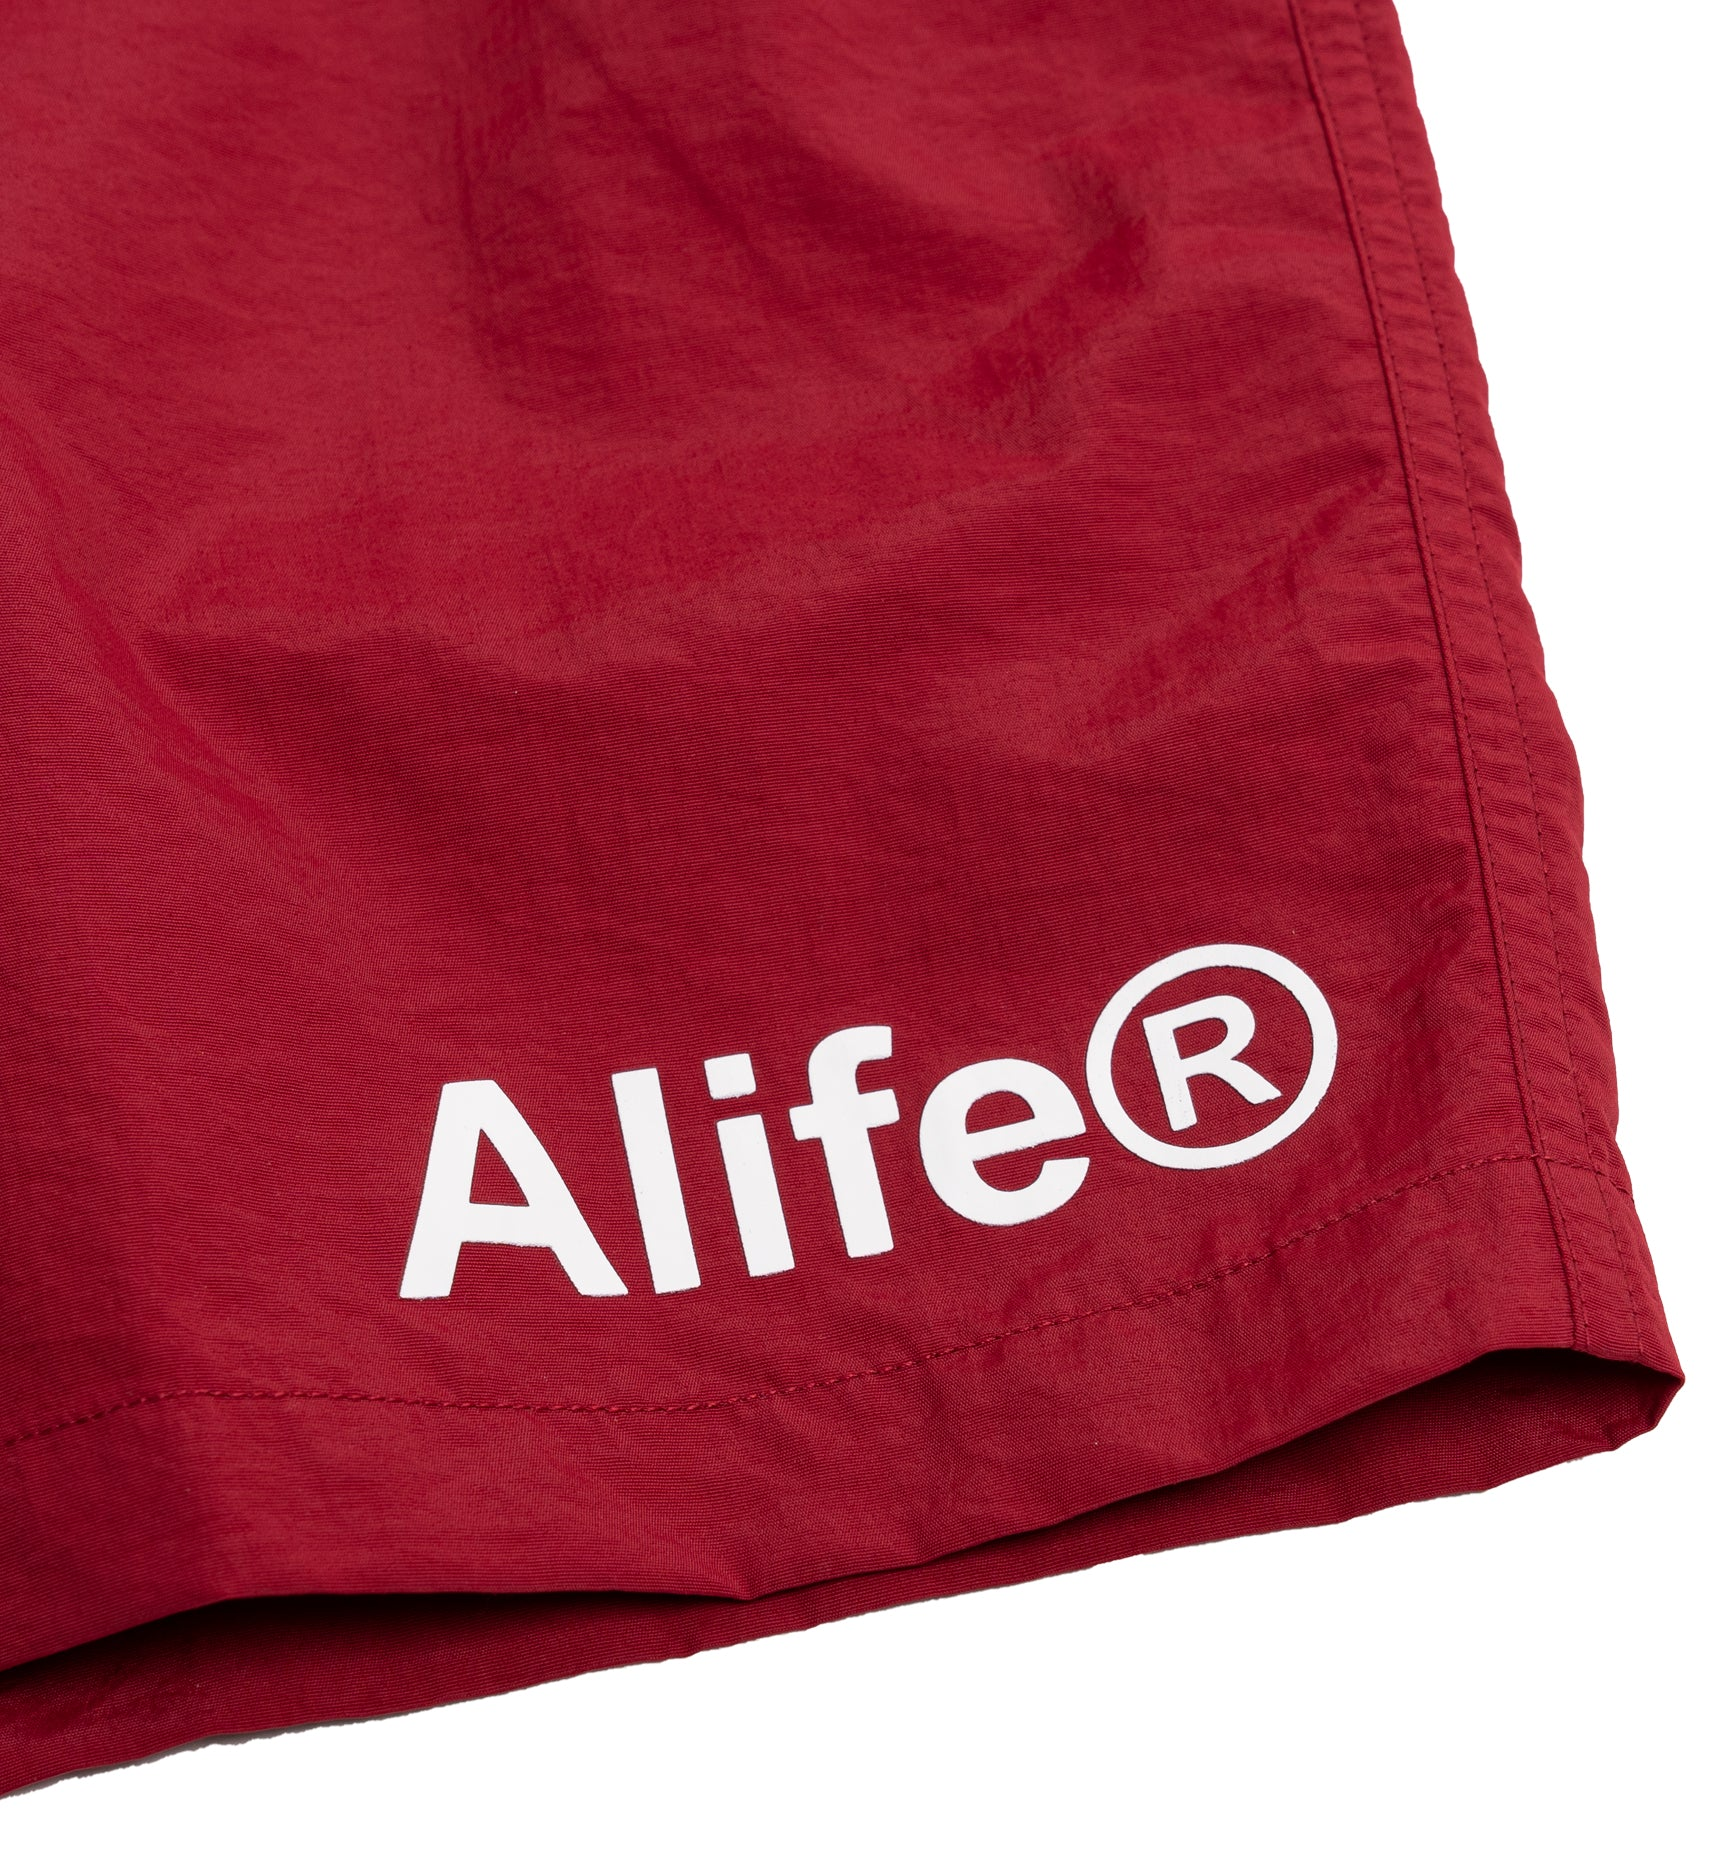 Alife Swim/Run Nylon Short - Maroon